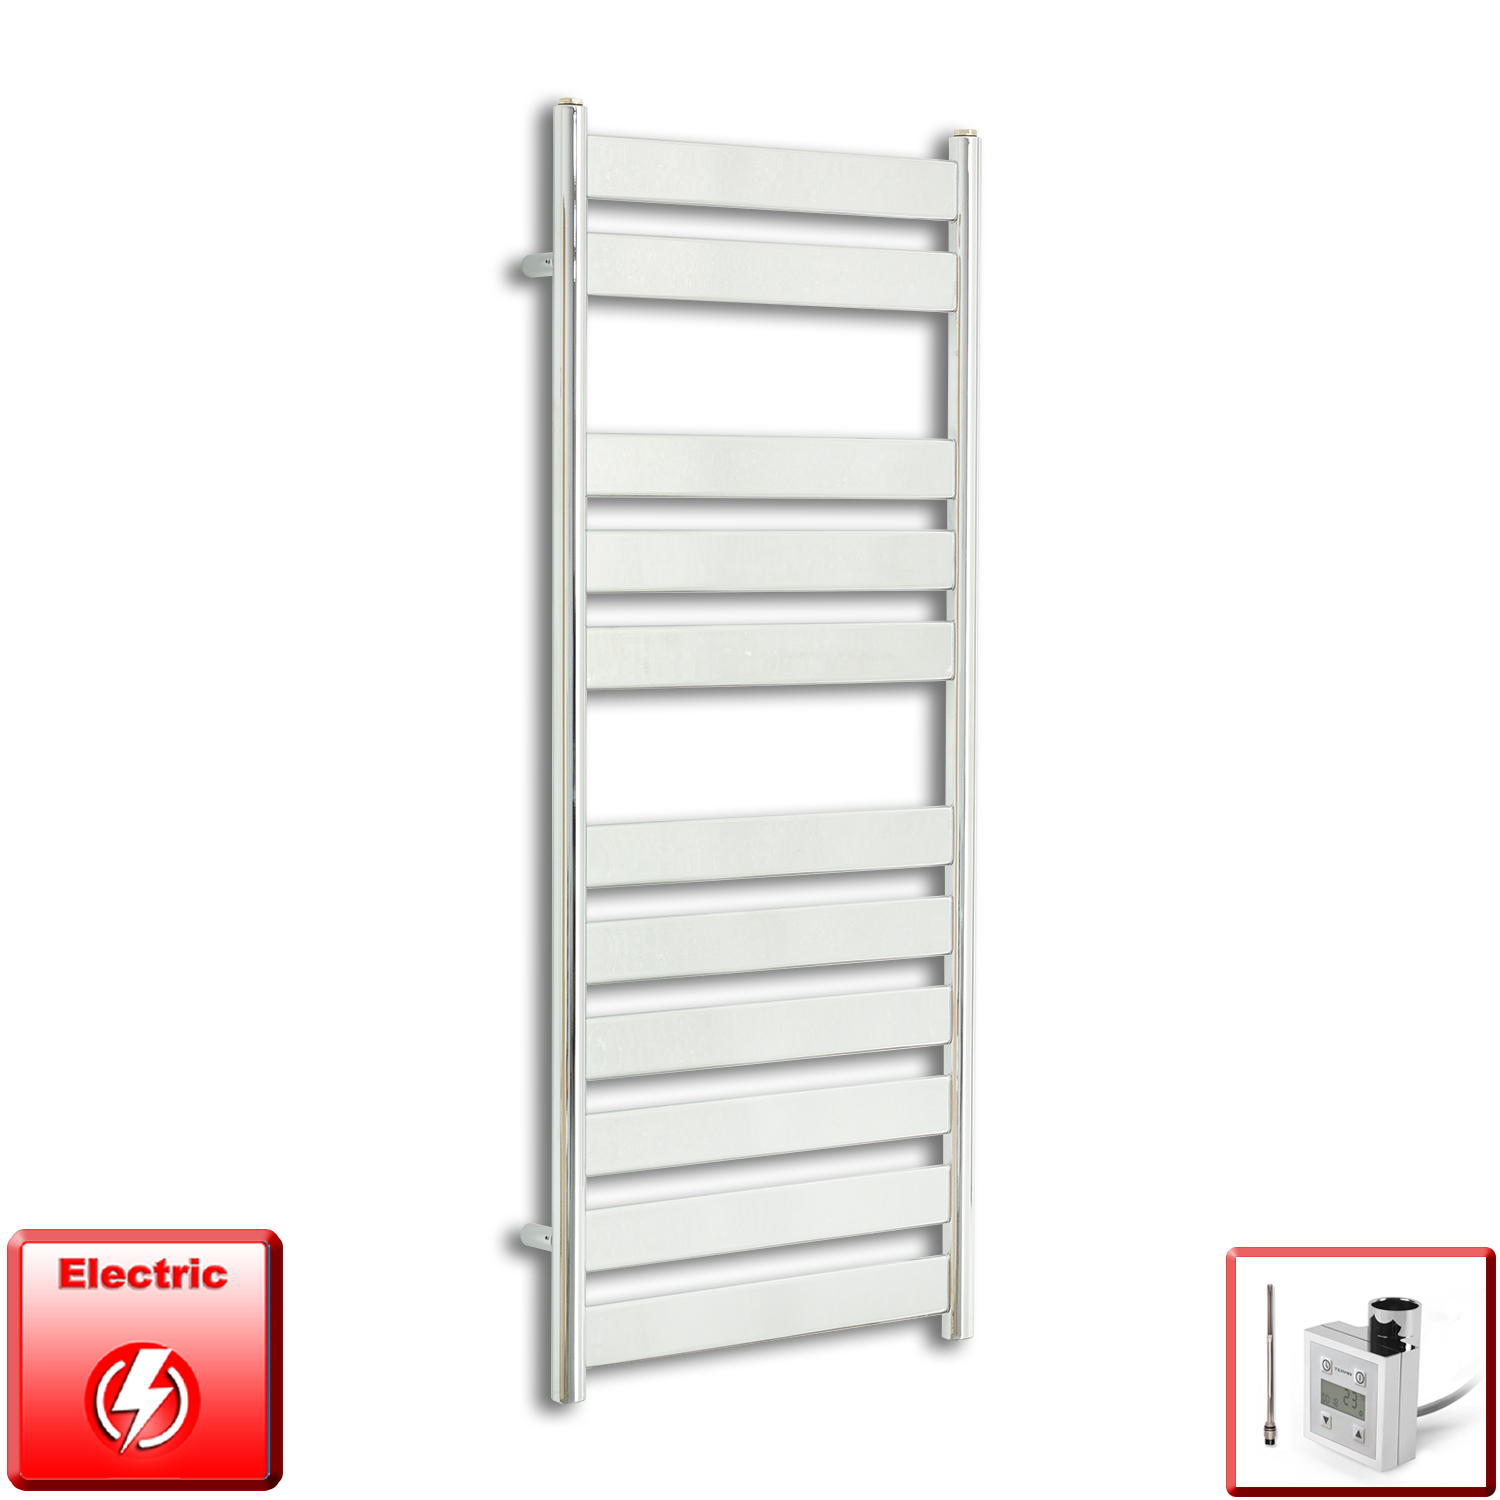 500mm Wide 1200mm High Pre-Filled Chrome Electric Towel Rail Radiator With Thermostatic KTX3 Element